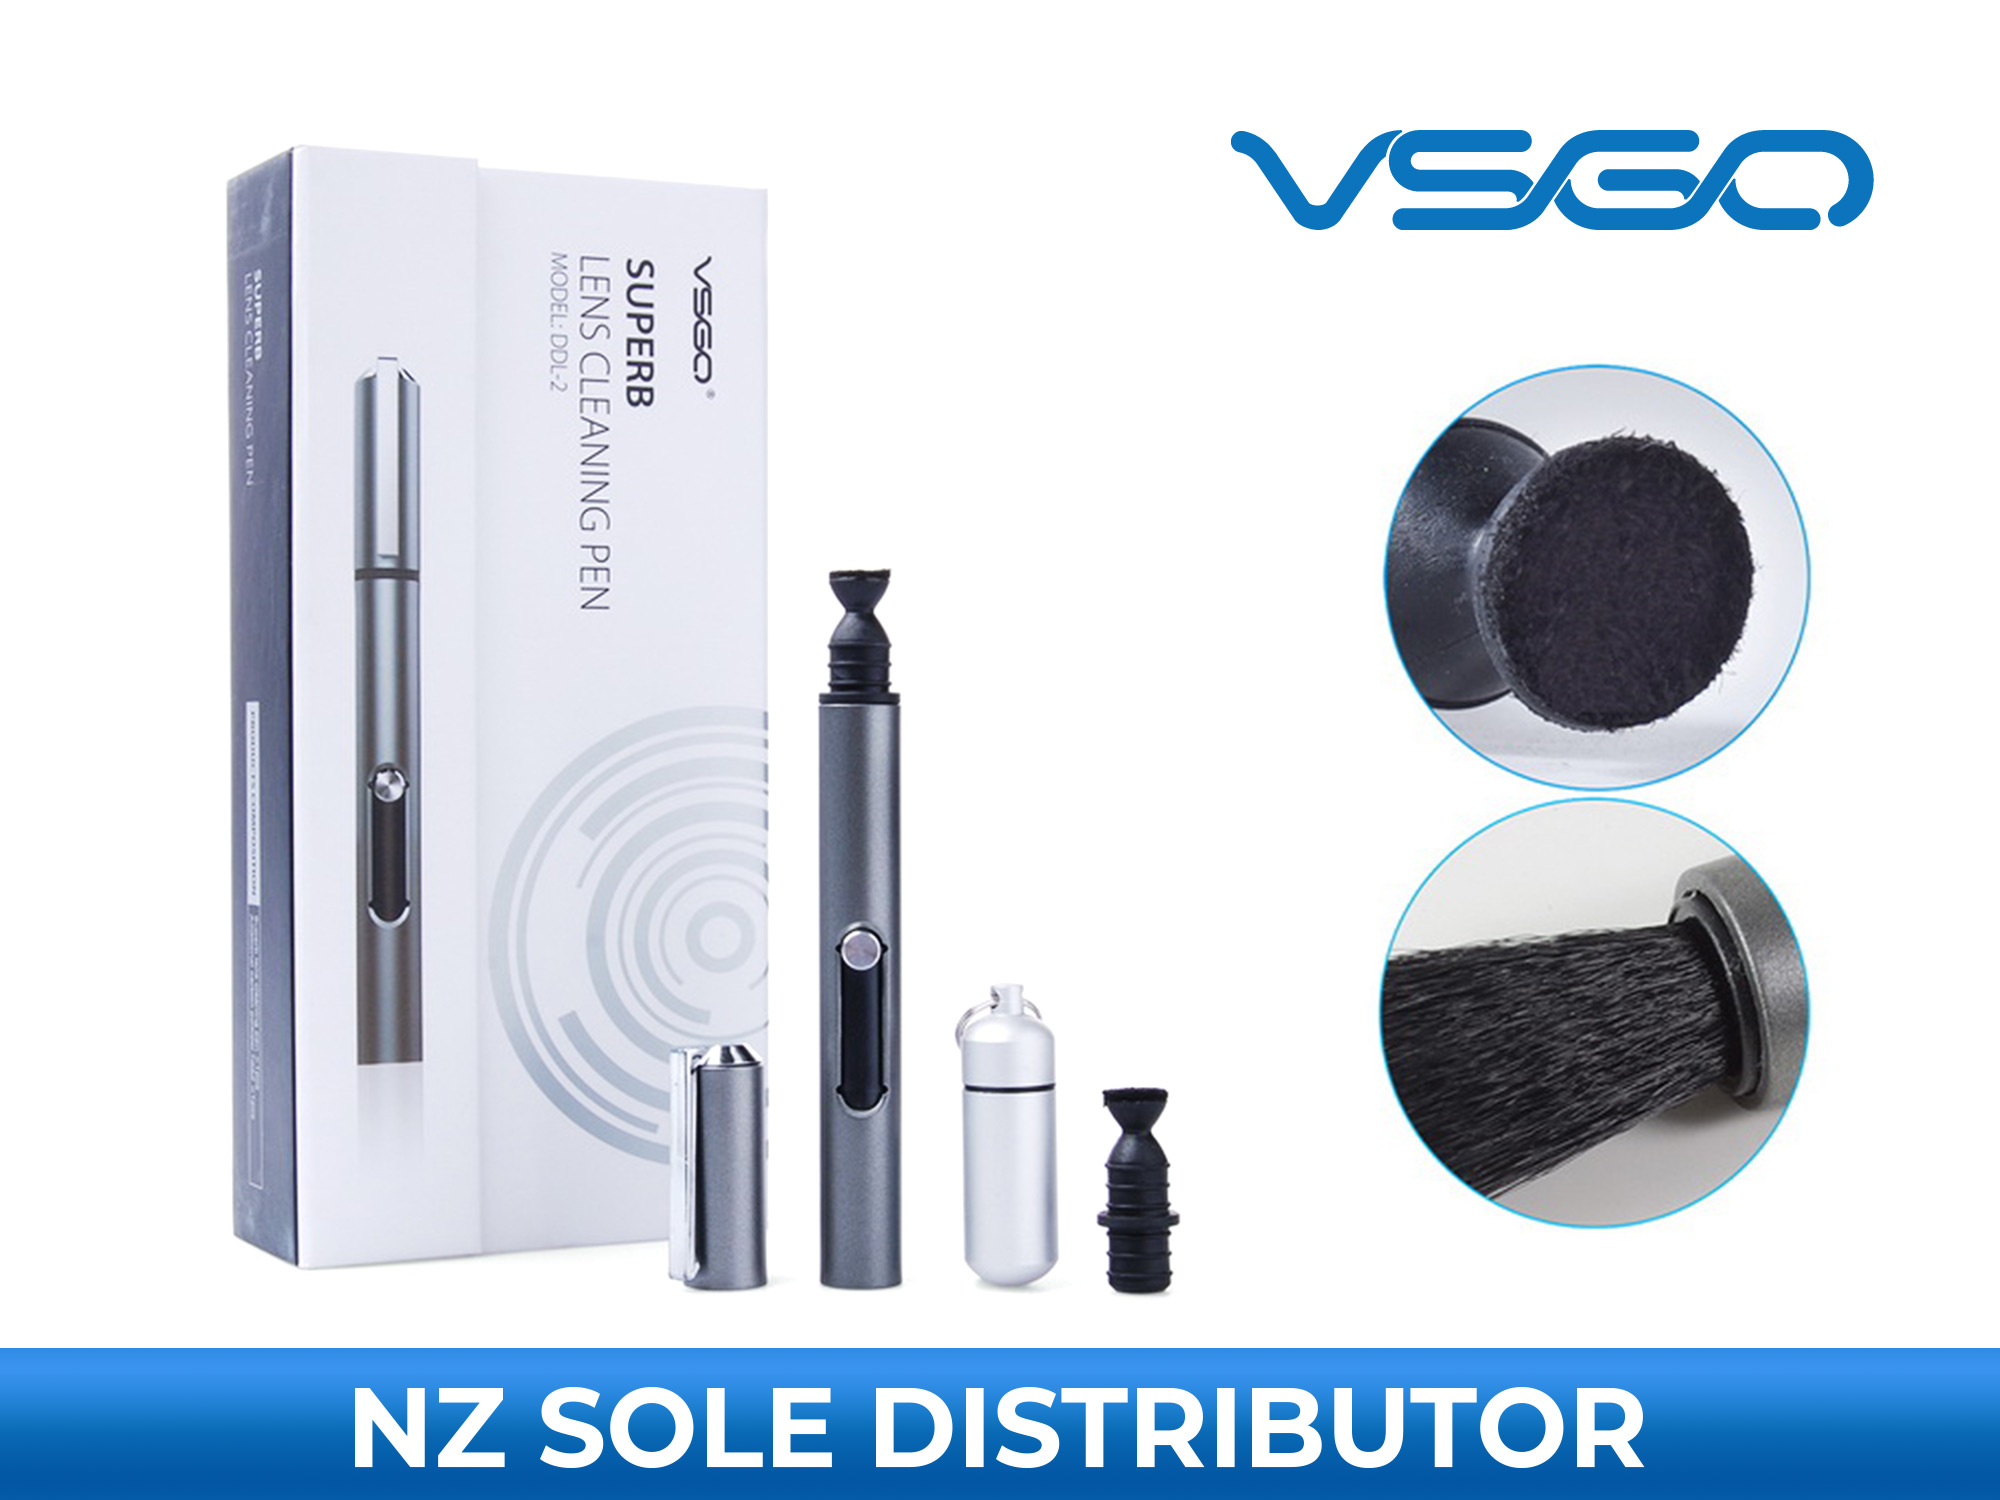 Lens Cleaning Pen Kit - Superb - VSGO